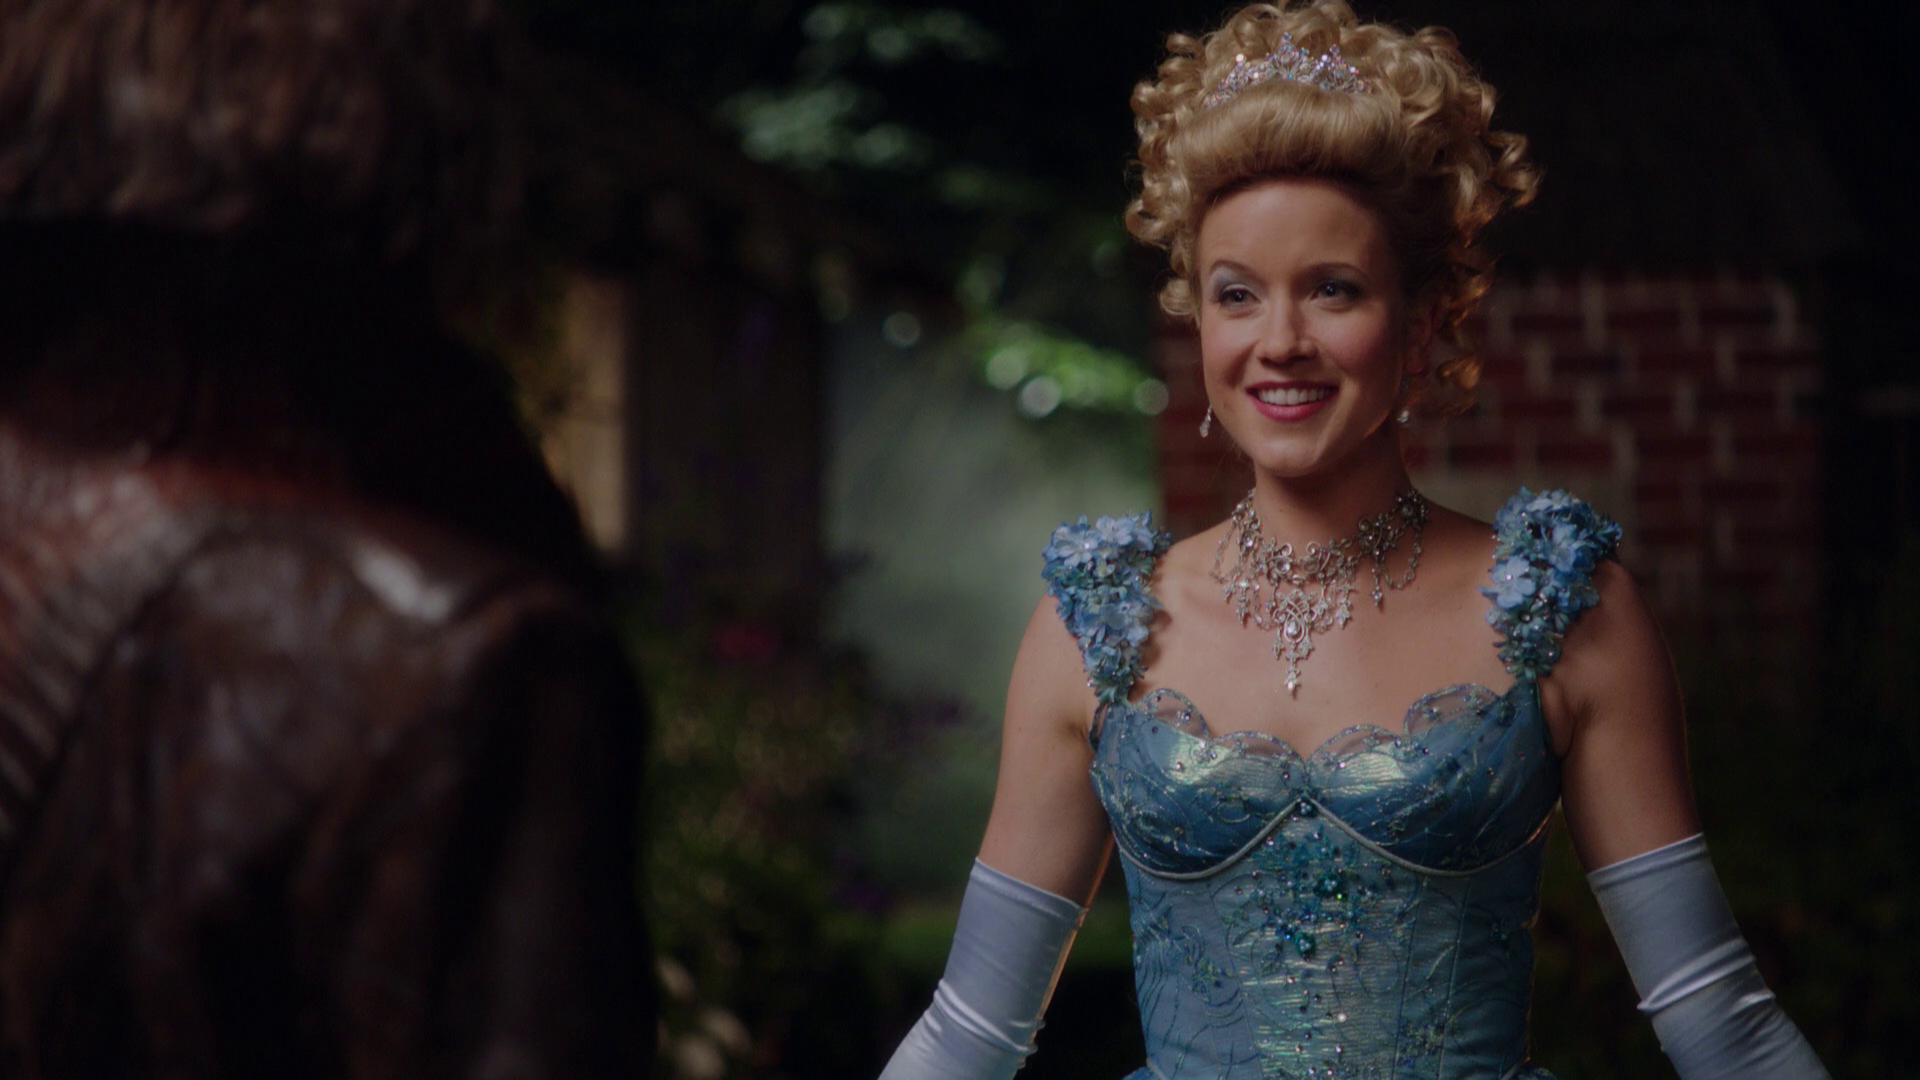 Cinderella The Price Of Gold Gallery Jessy Schram Once Upon A Time Cinderella